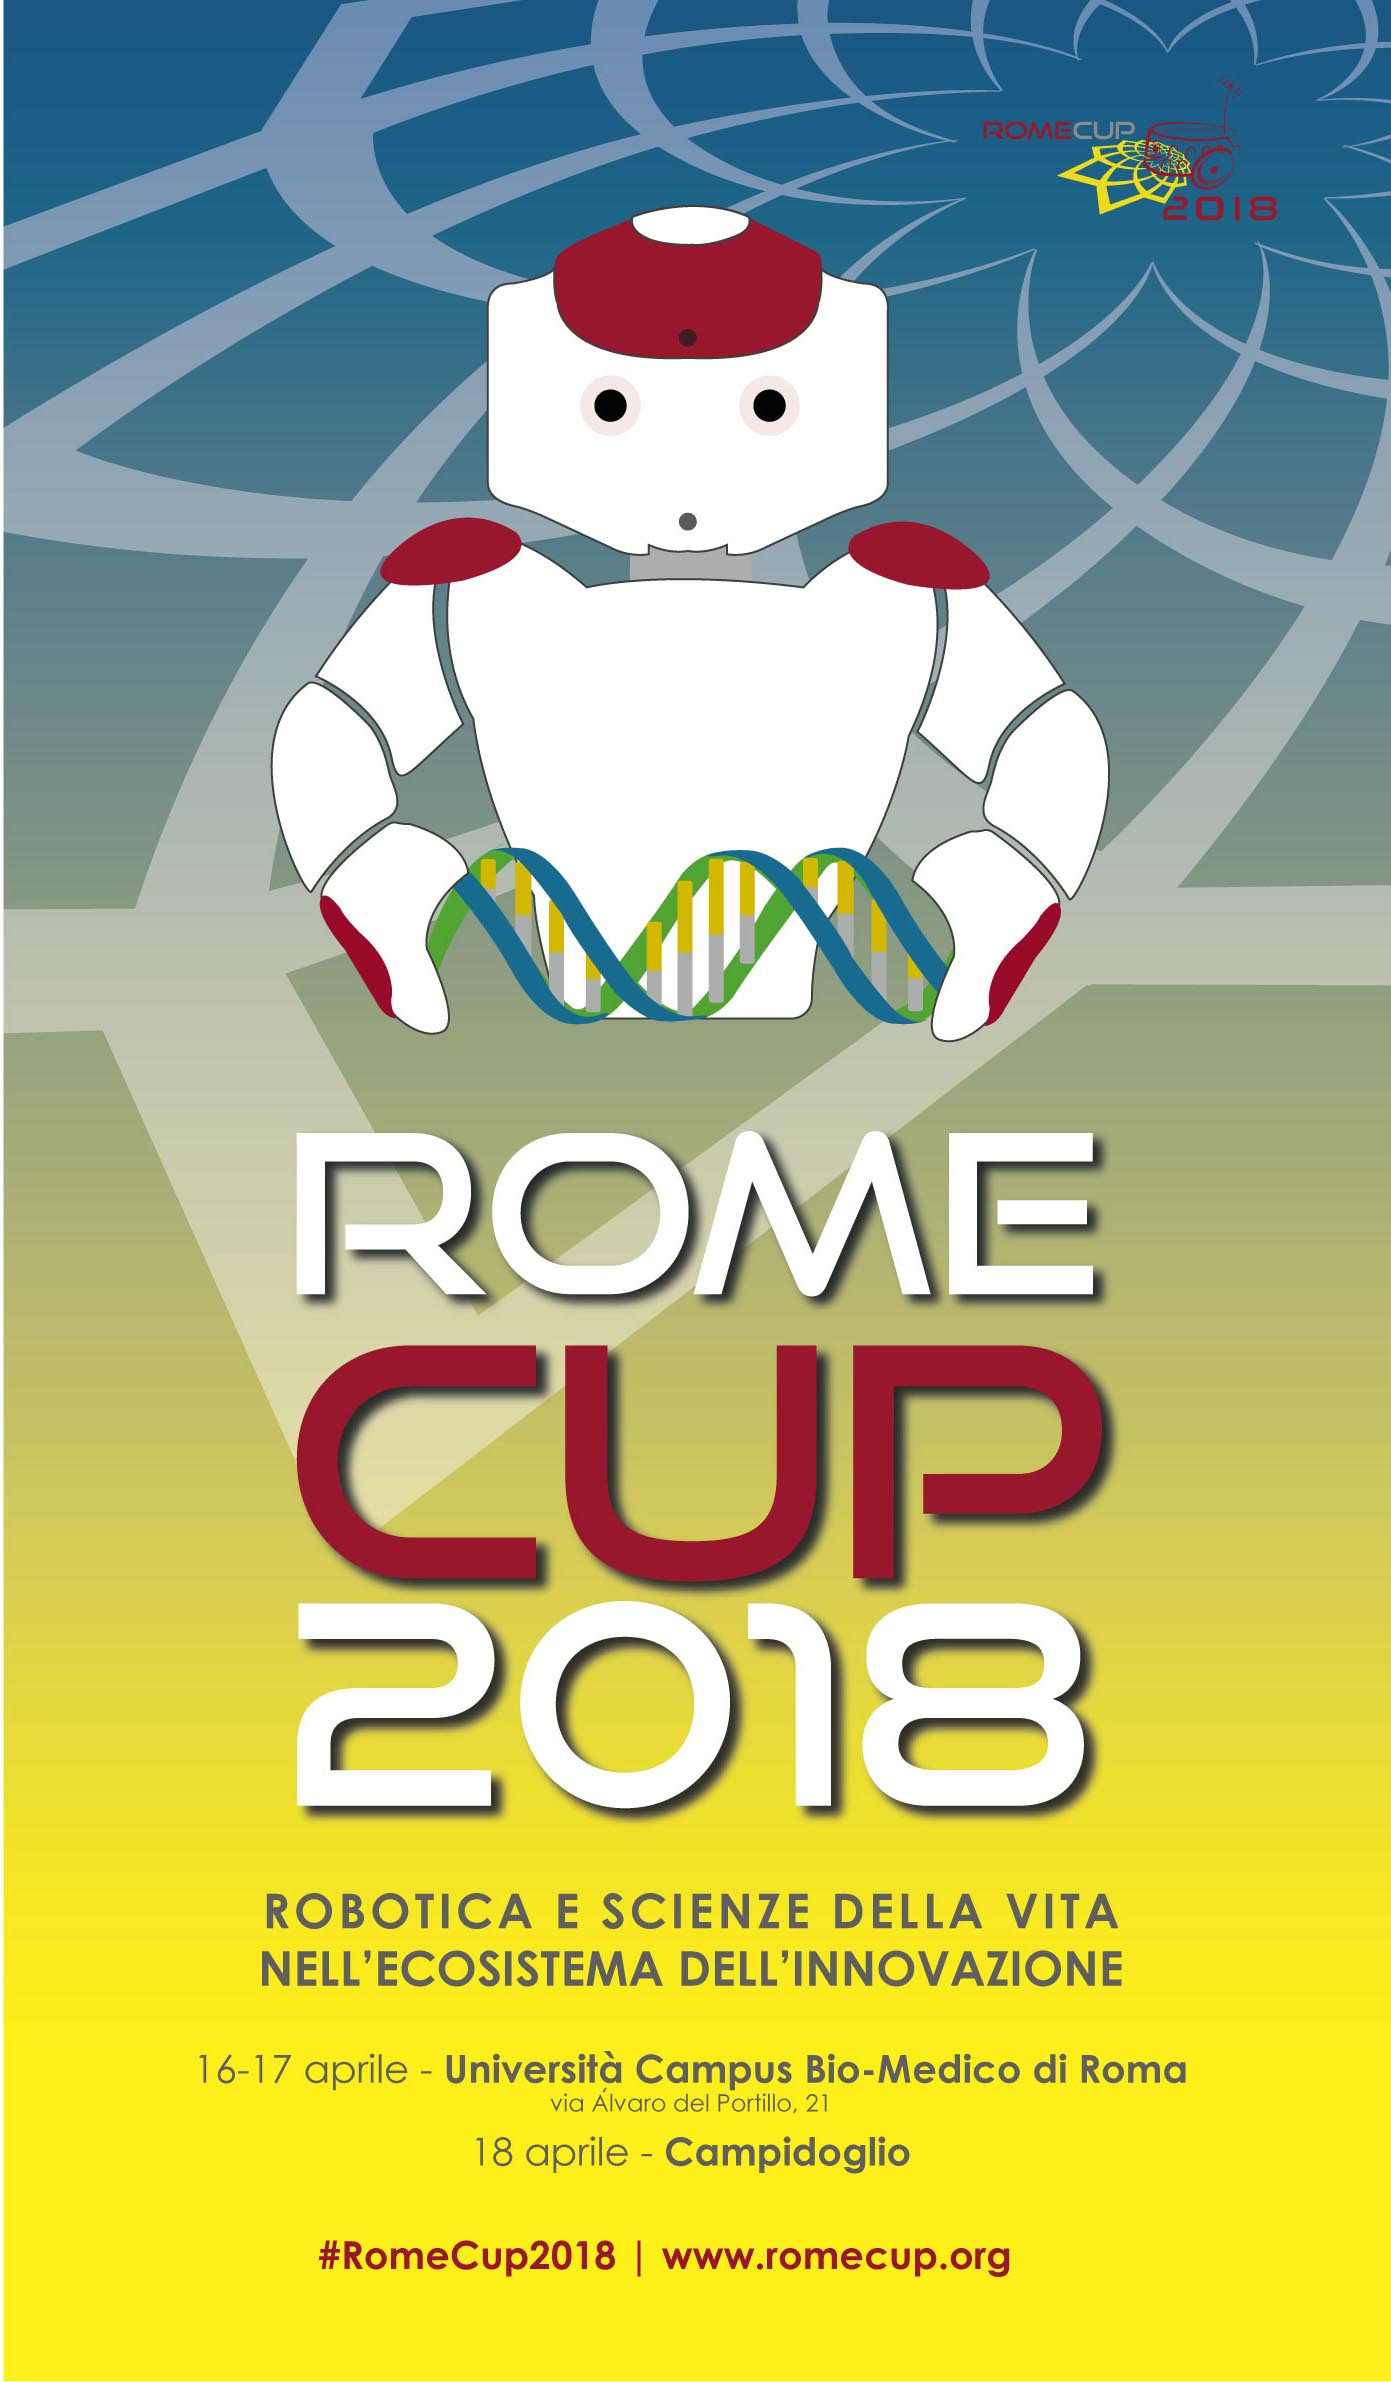 ROME CUP 2018